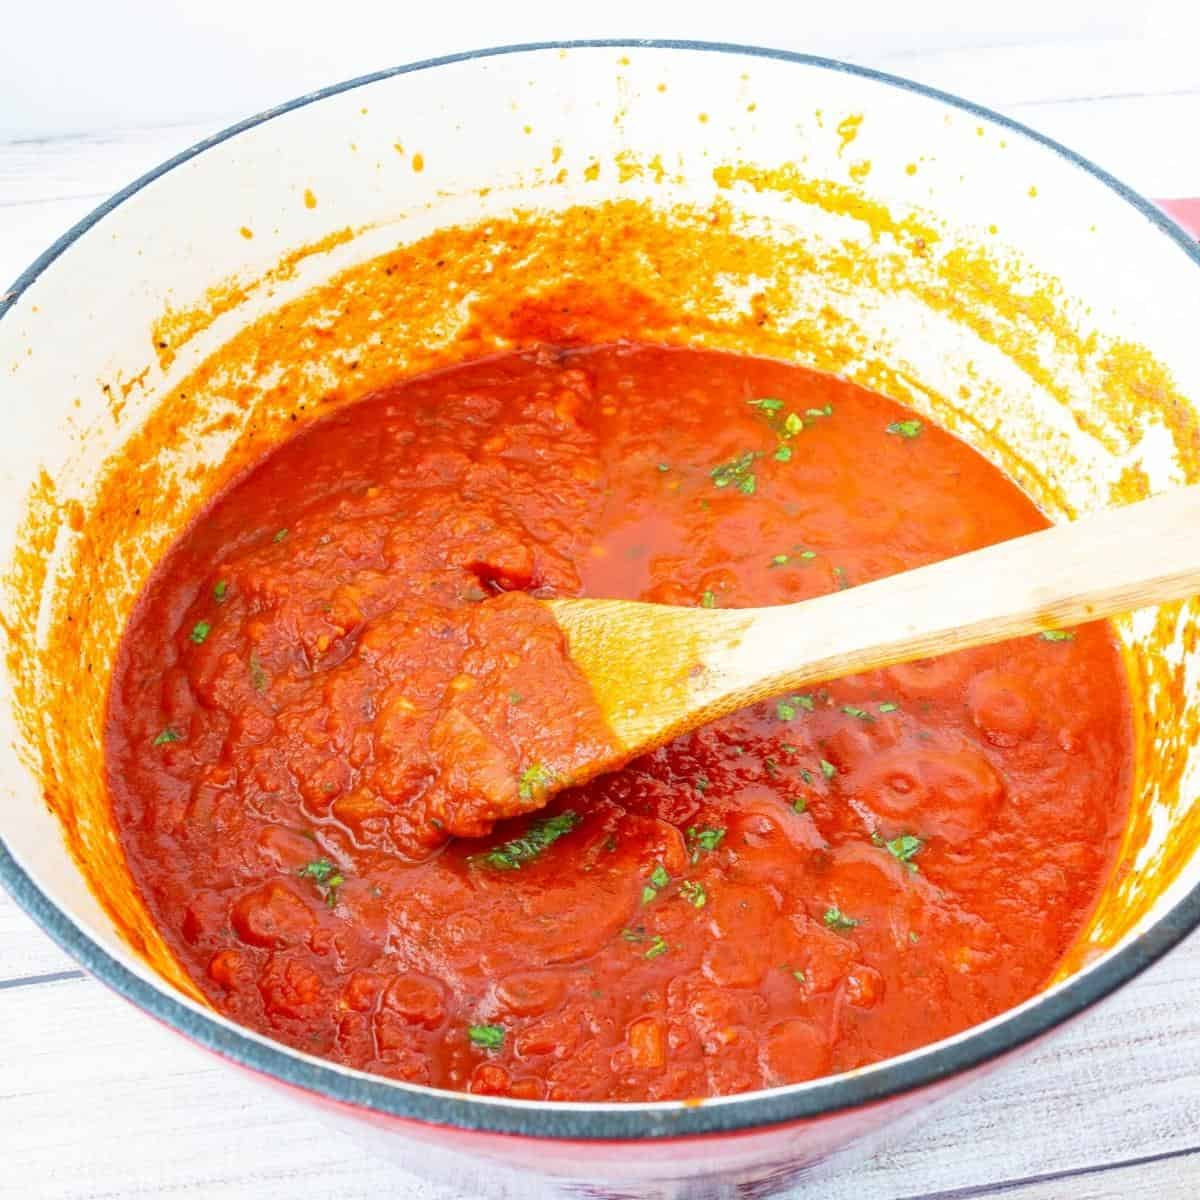 A Dutch oven with tomato sauce.